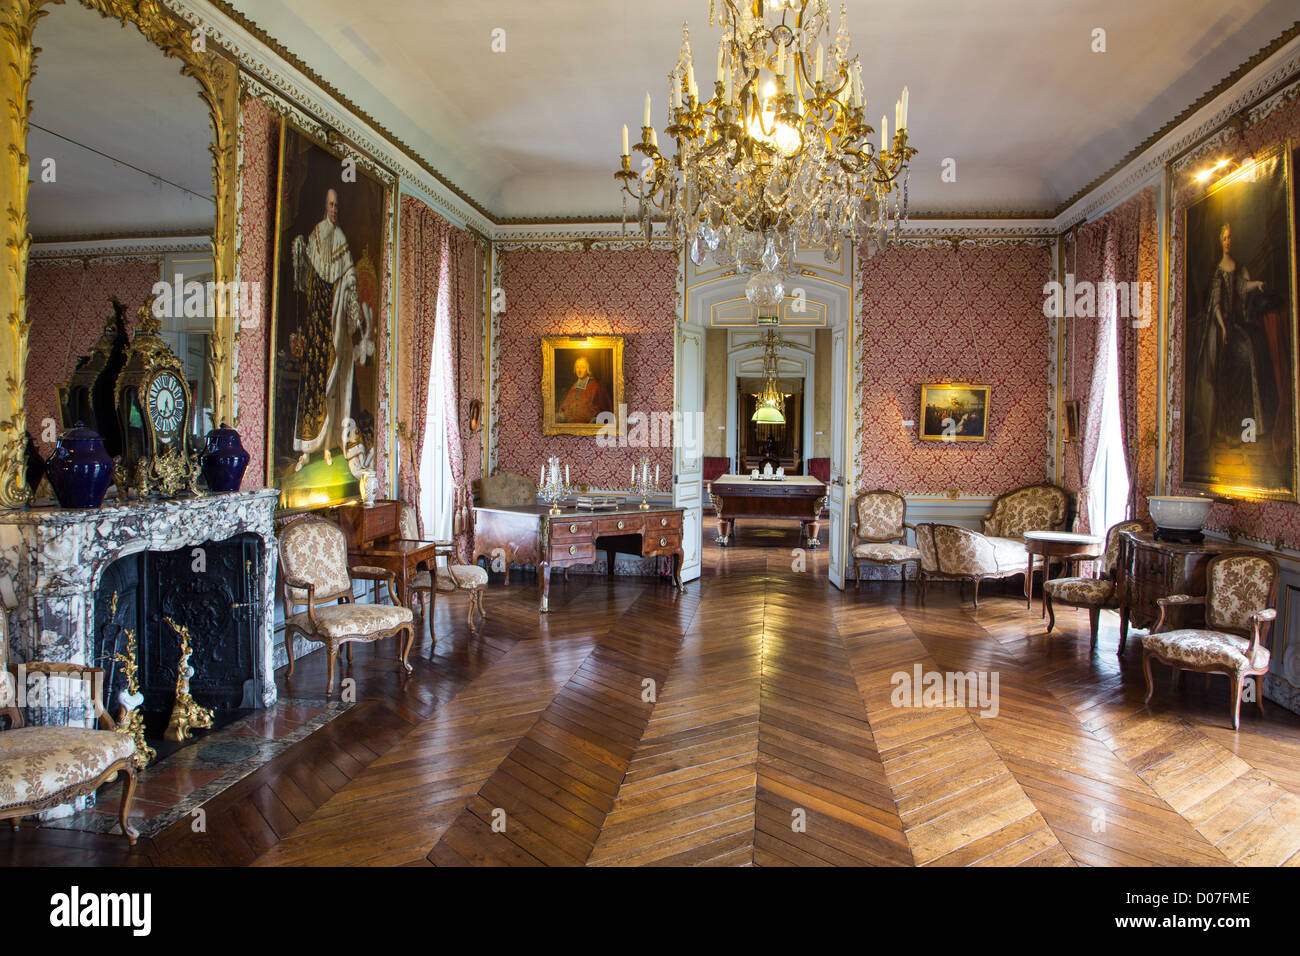 the great salon chateau de maintenon eure et loir 28 france stock photo 51797102 alamy. Black Bedroom Furniture Sets. Home Design Ideas